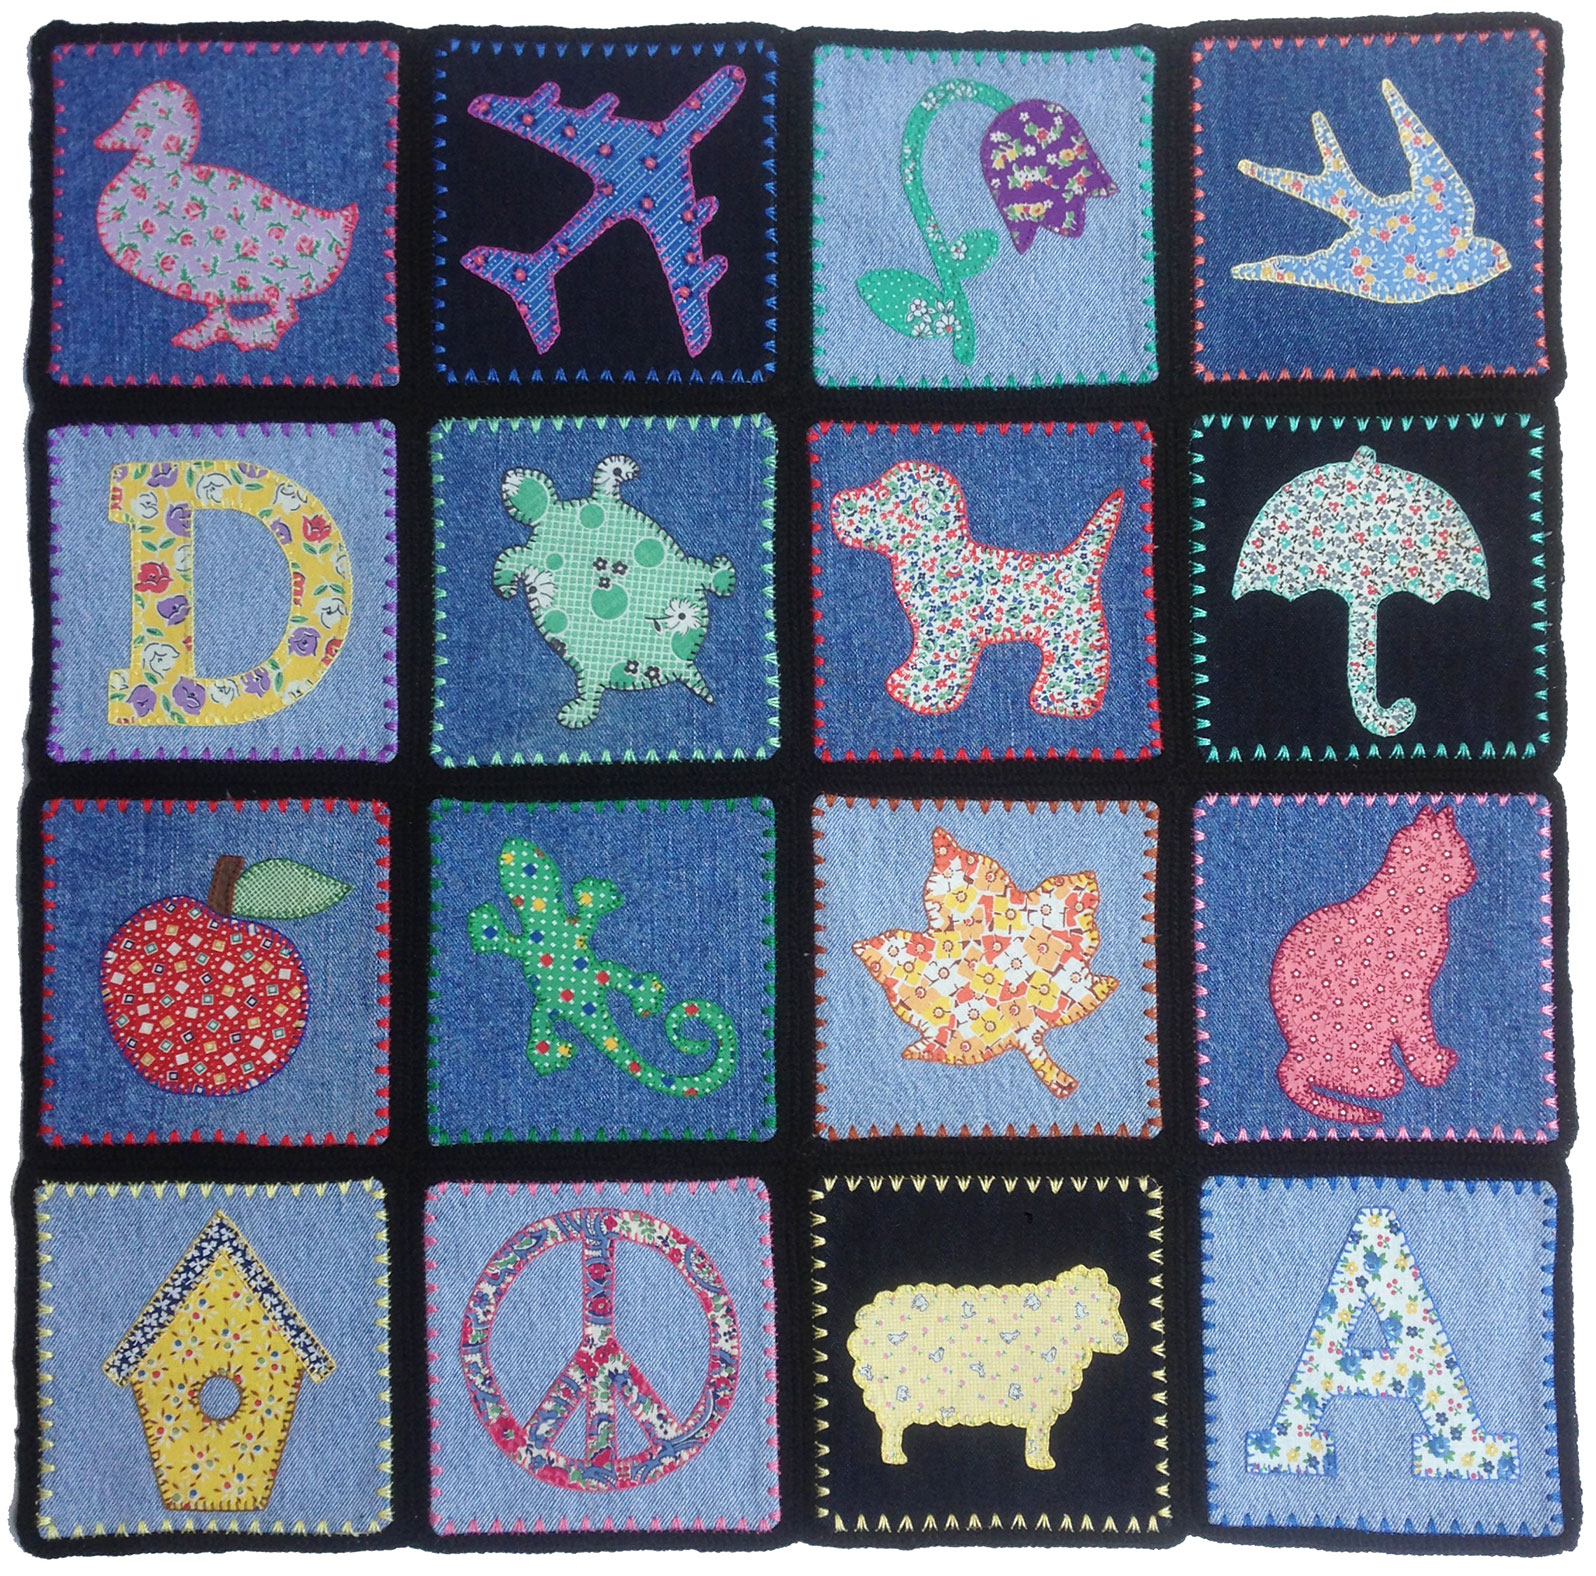 Hand quilting designs from vintage embroidery transfers for Appliques design